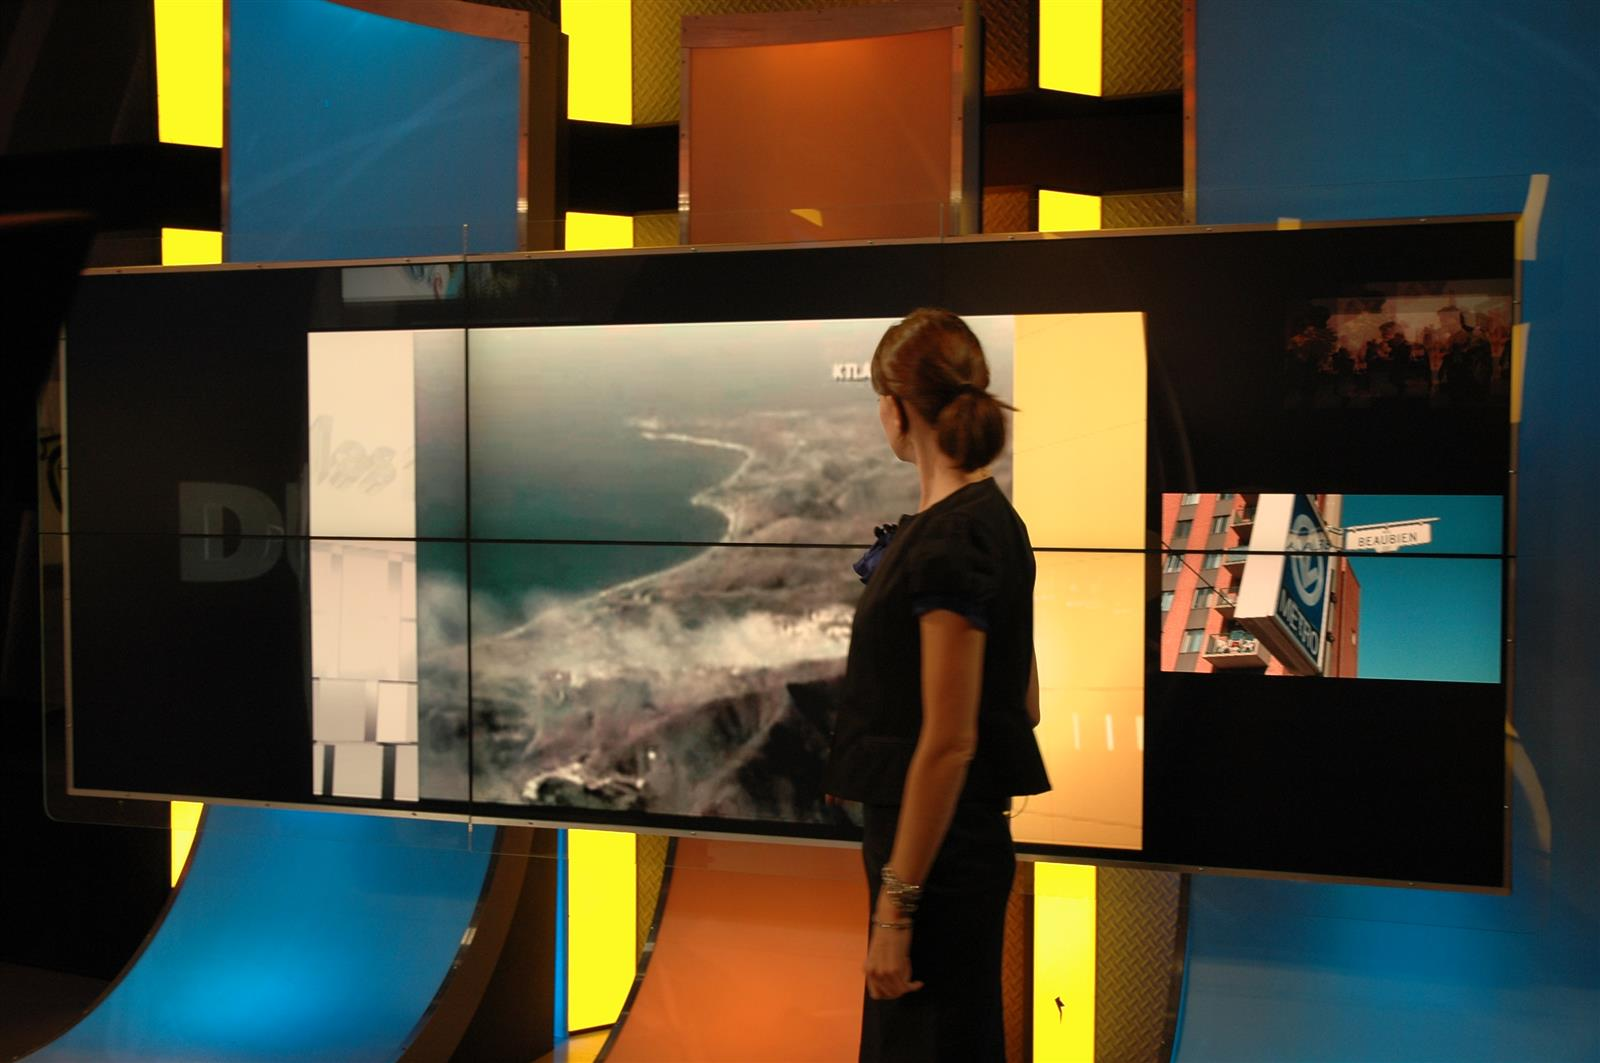 TV Show Interactive presenter screen